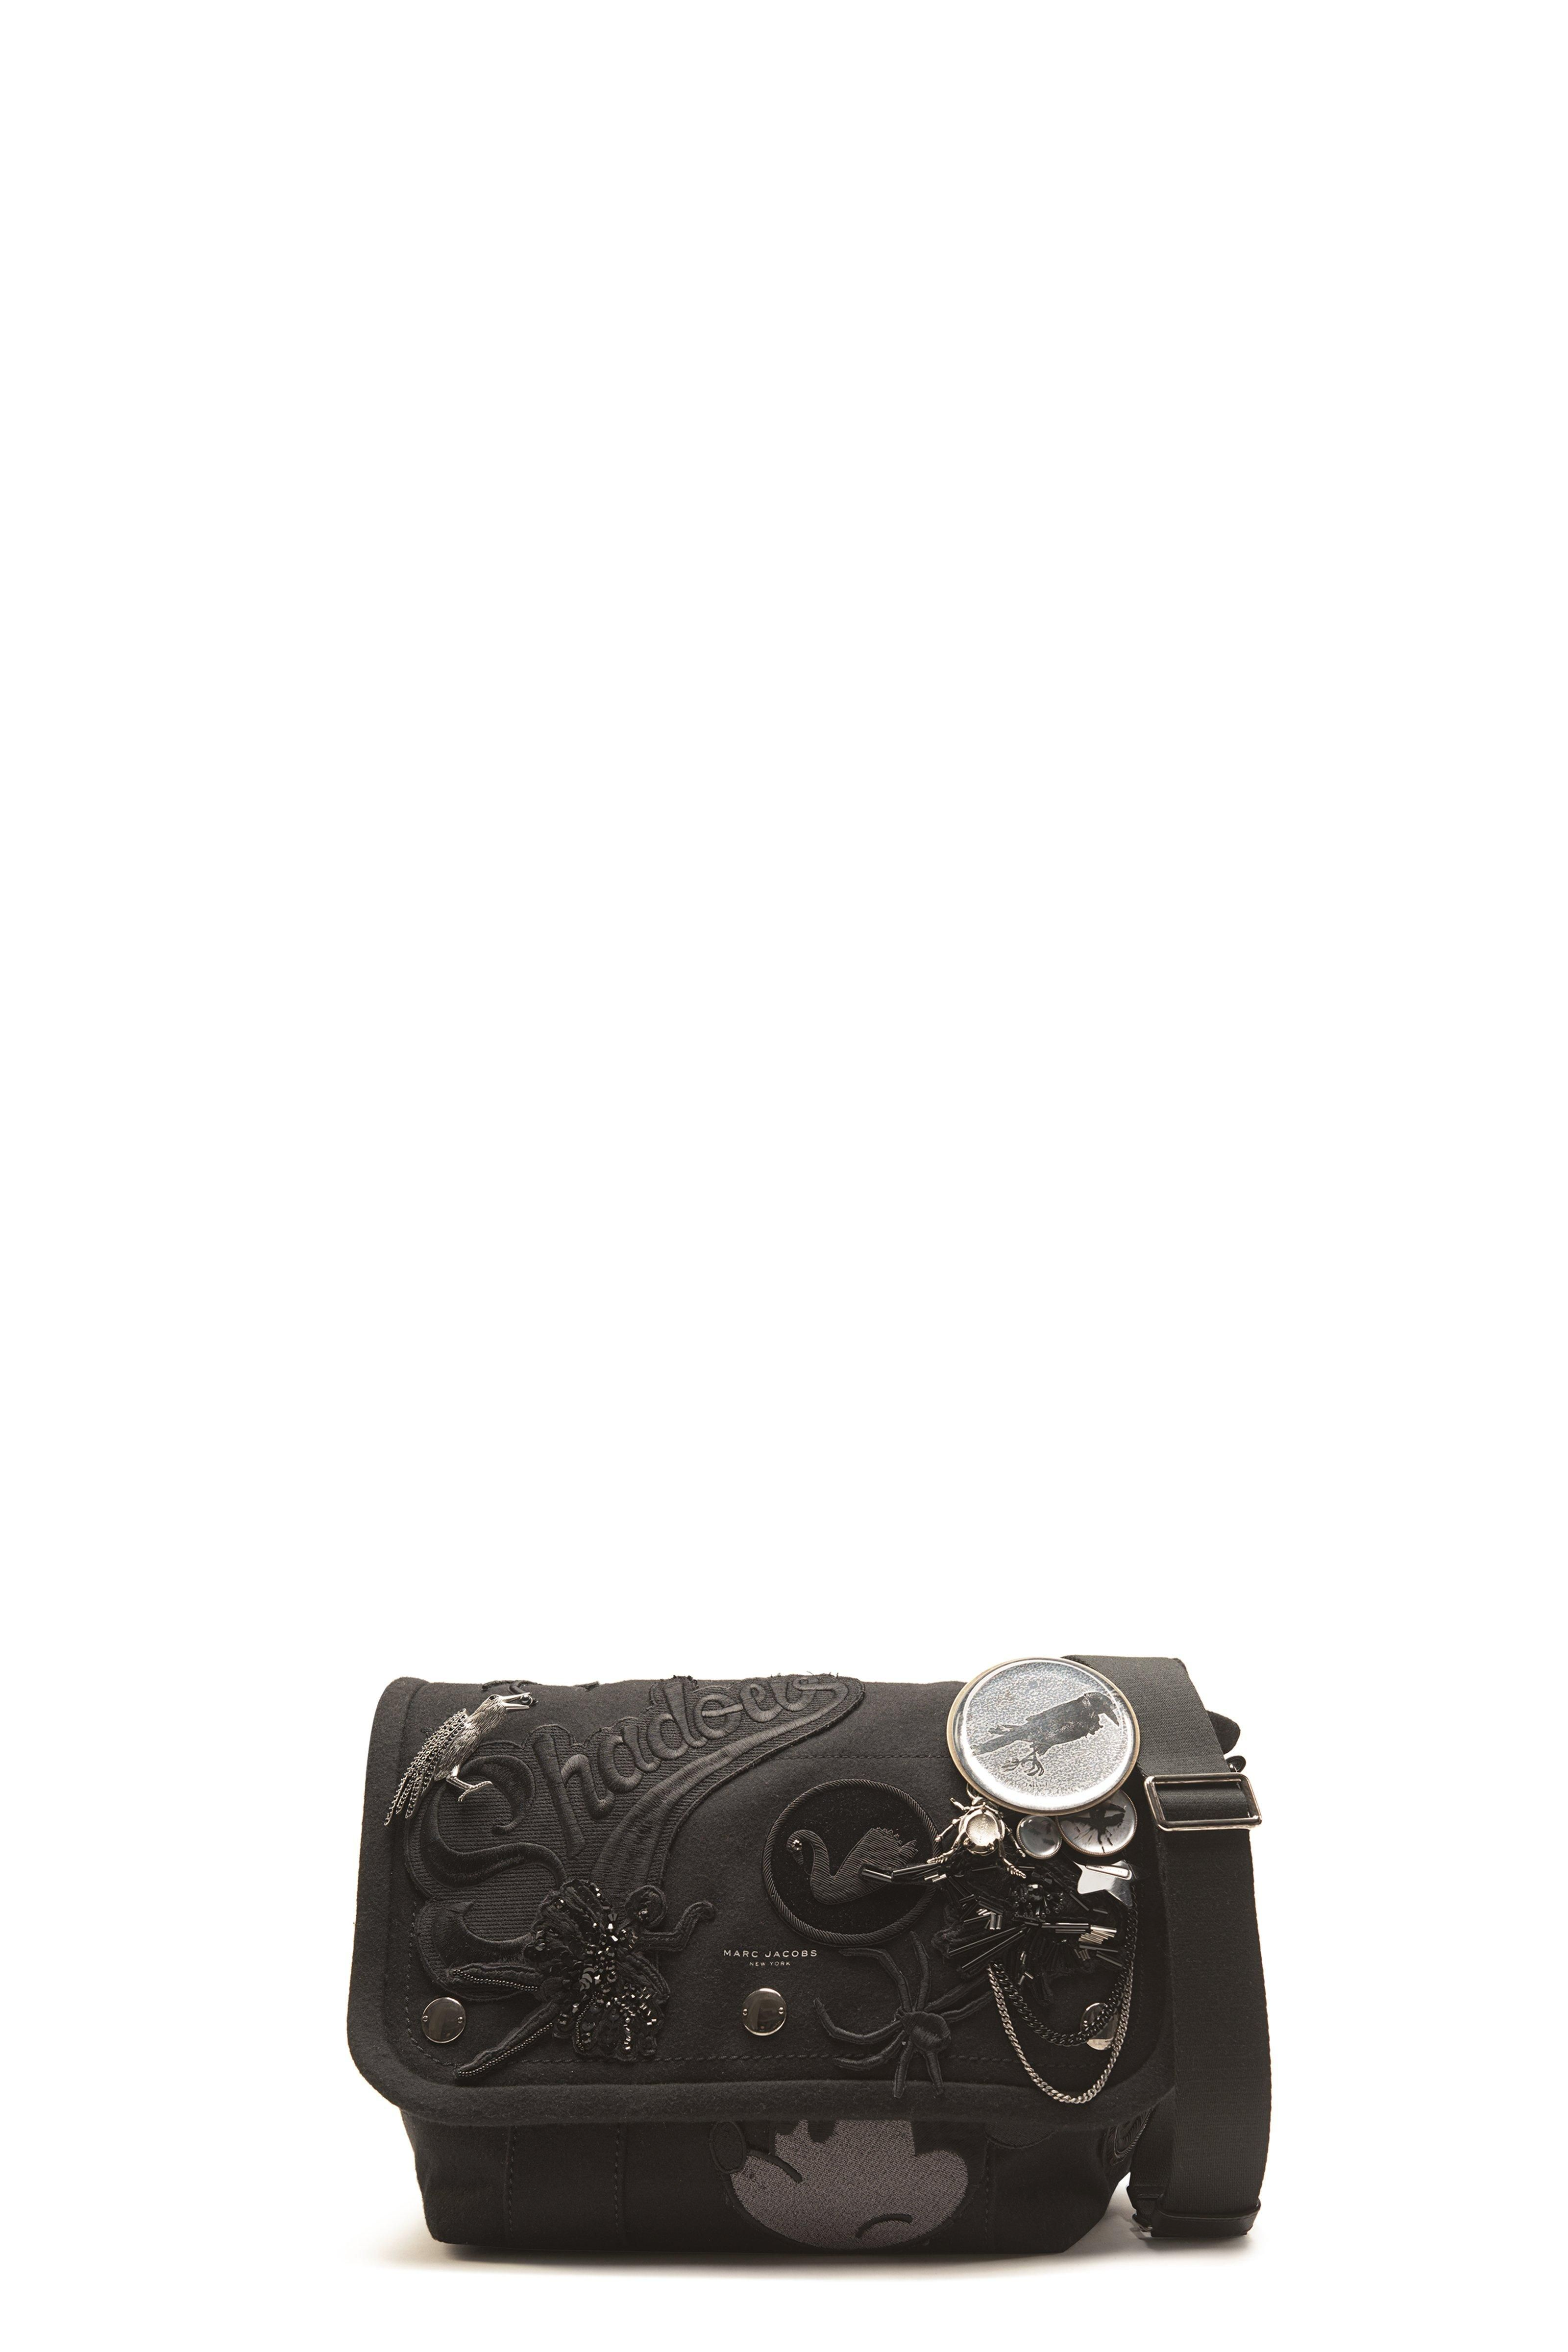 ac3902f92b316 The Marc Jacobs Rummage Wool Small Messenger features this seasons favorite…